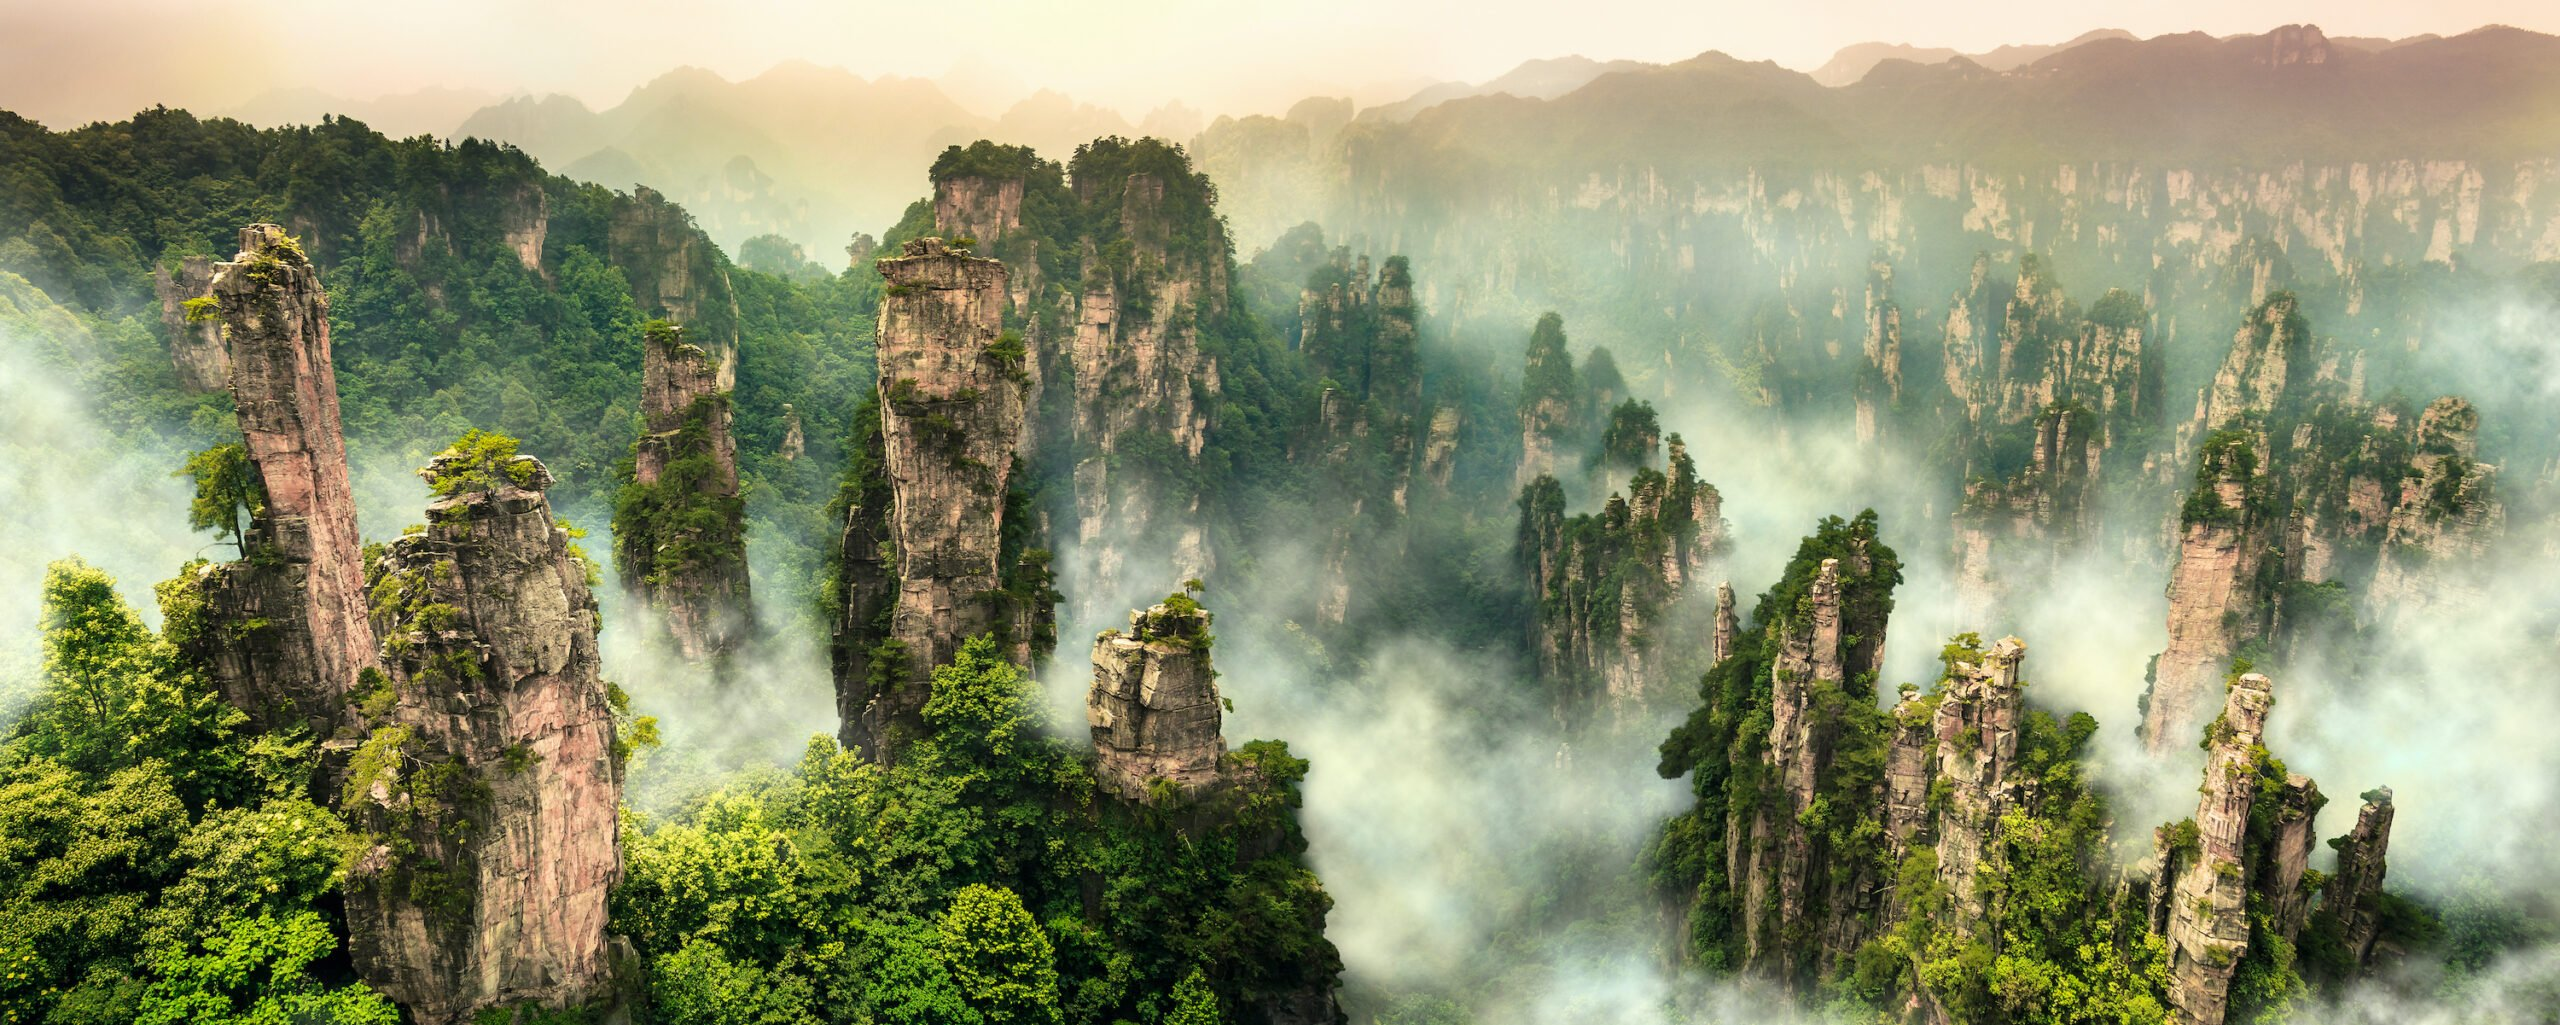 Visit Tianzi Mountain Nature Reserve In Our Zhangjiajie And Fenghuang 4 Day Package Tour